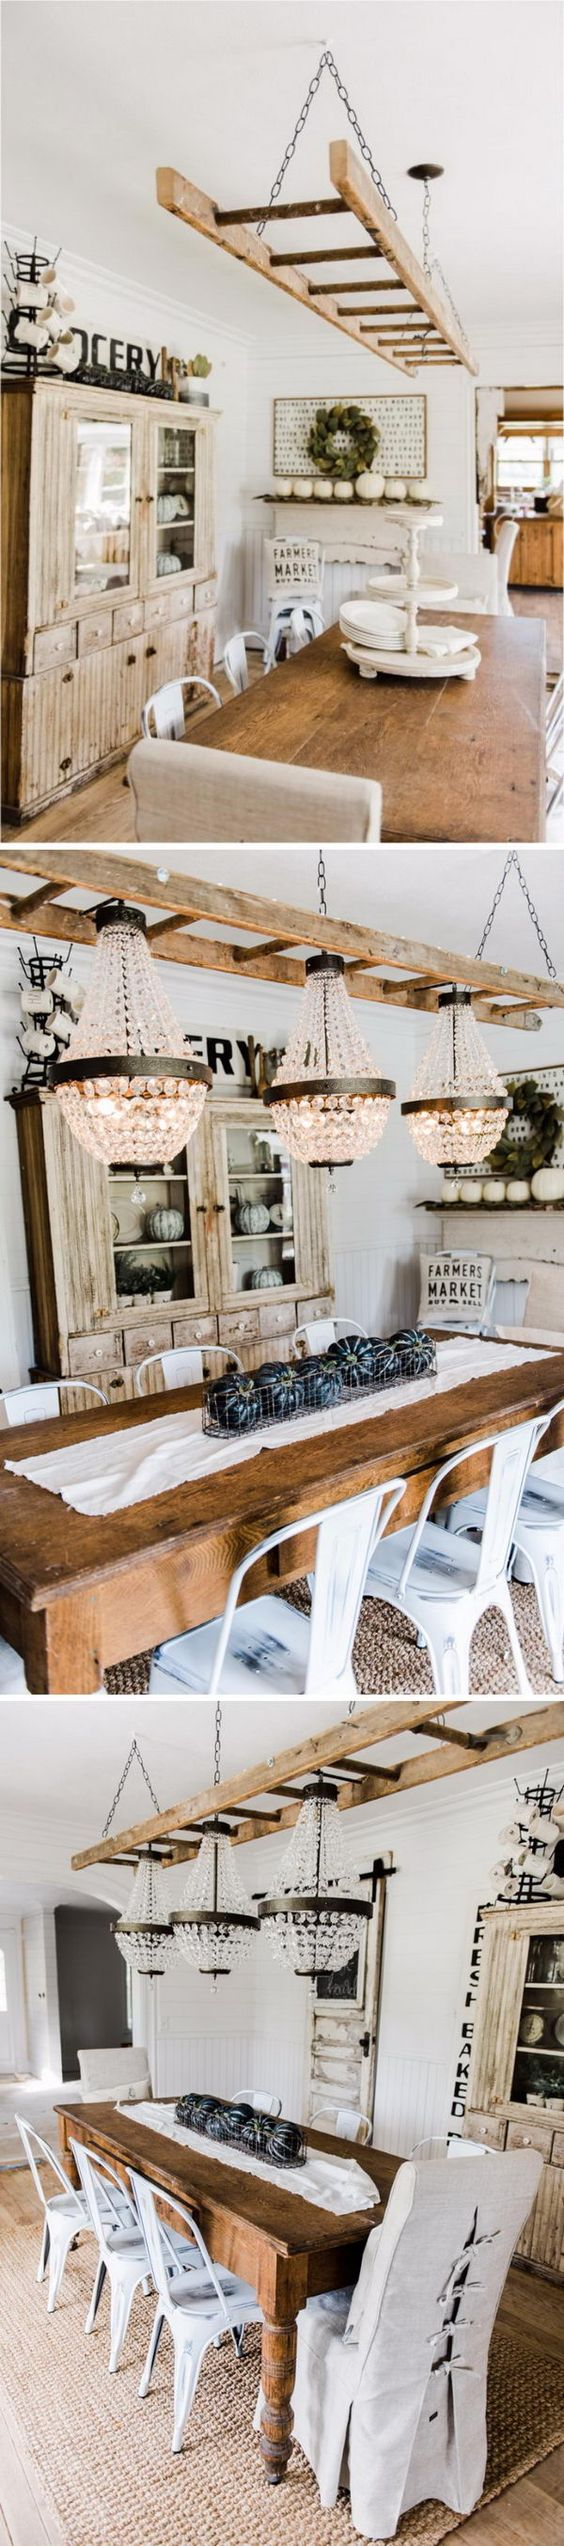 47 Ideas For Repurposing Old Ladders Farmhouse Style